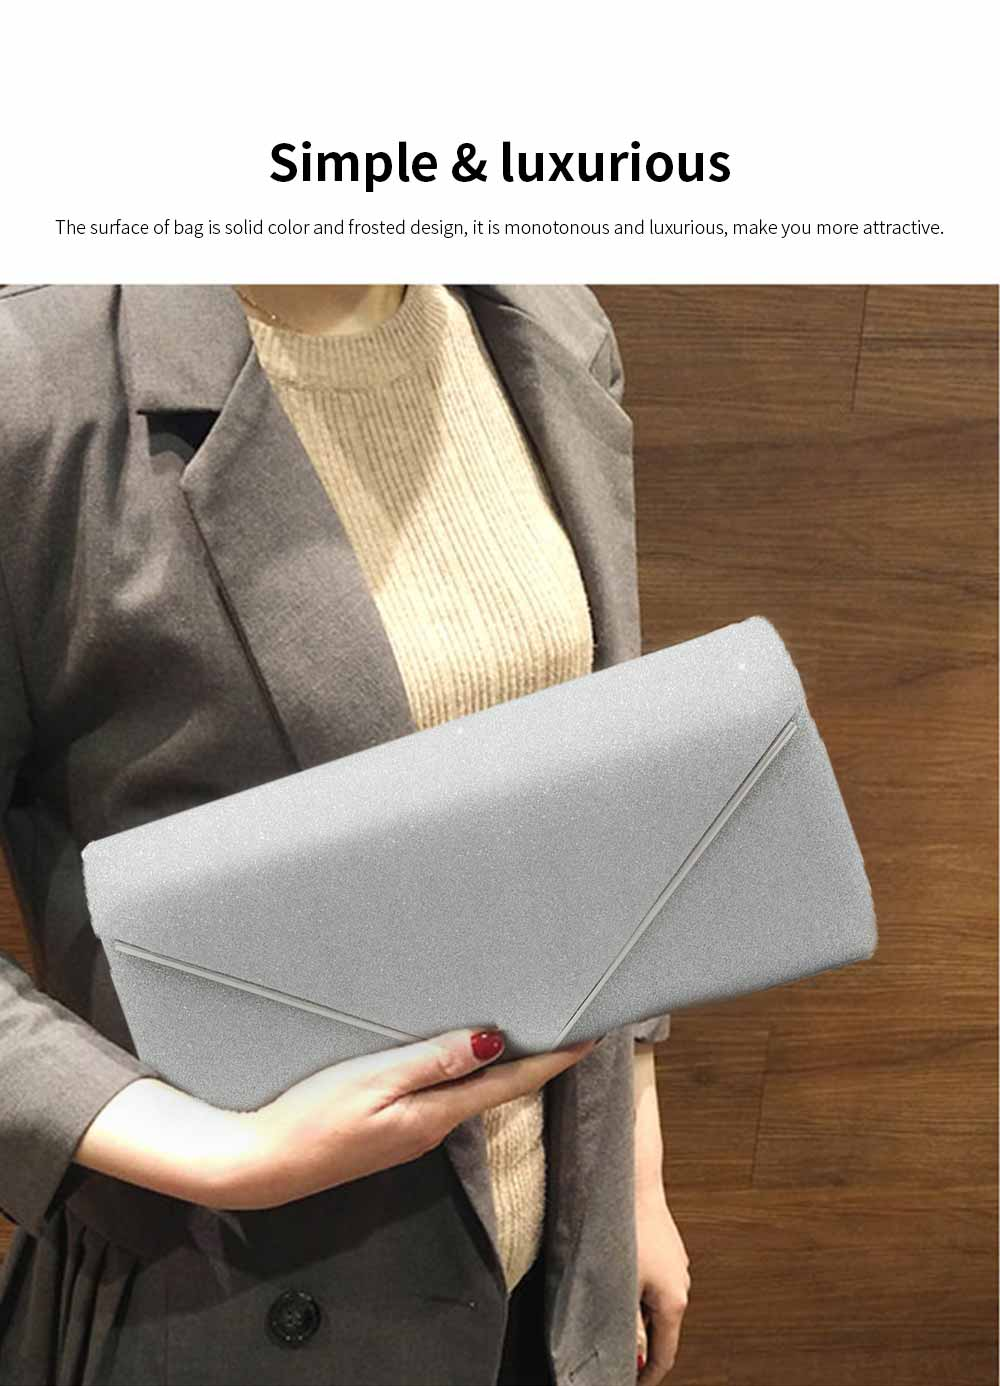 Evening Bag Lining Clothe Material Elegant Clutch for Dinner Women Shiny Envelope-bag Good-looking Handbag 5